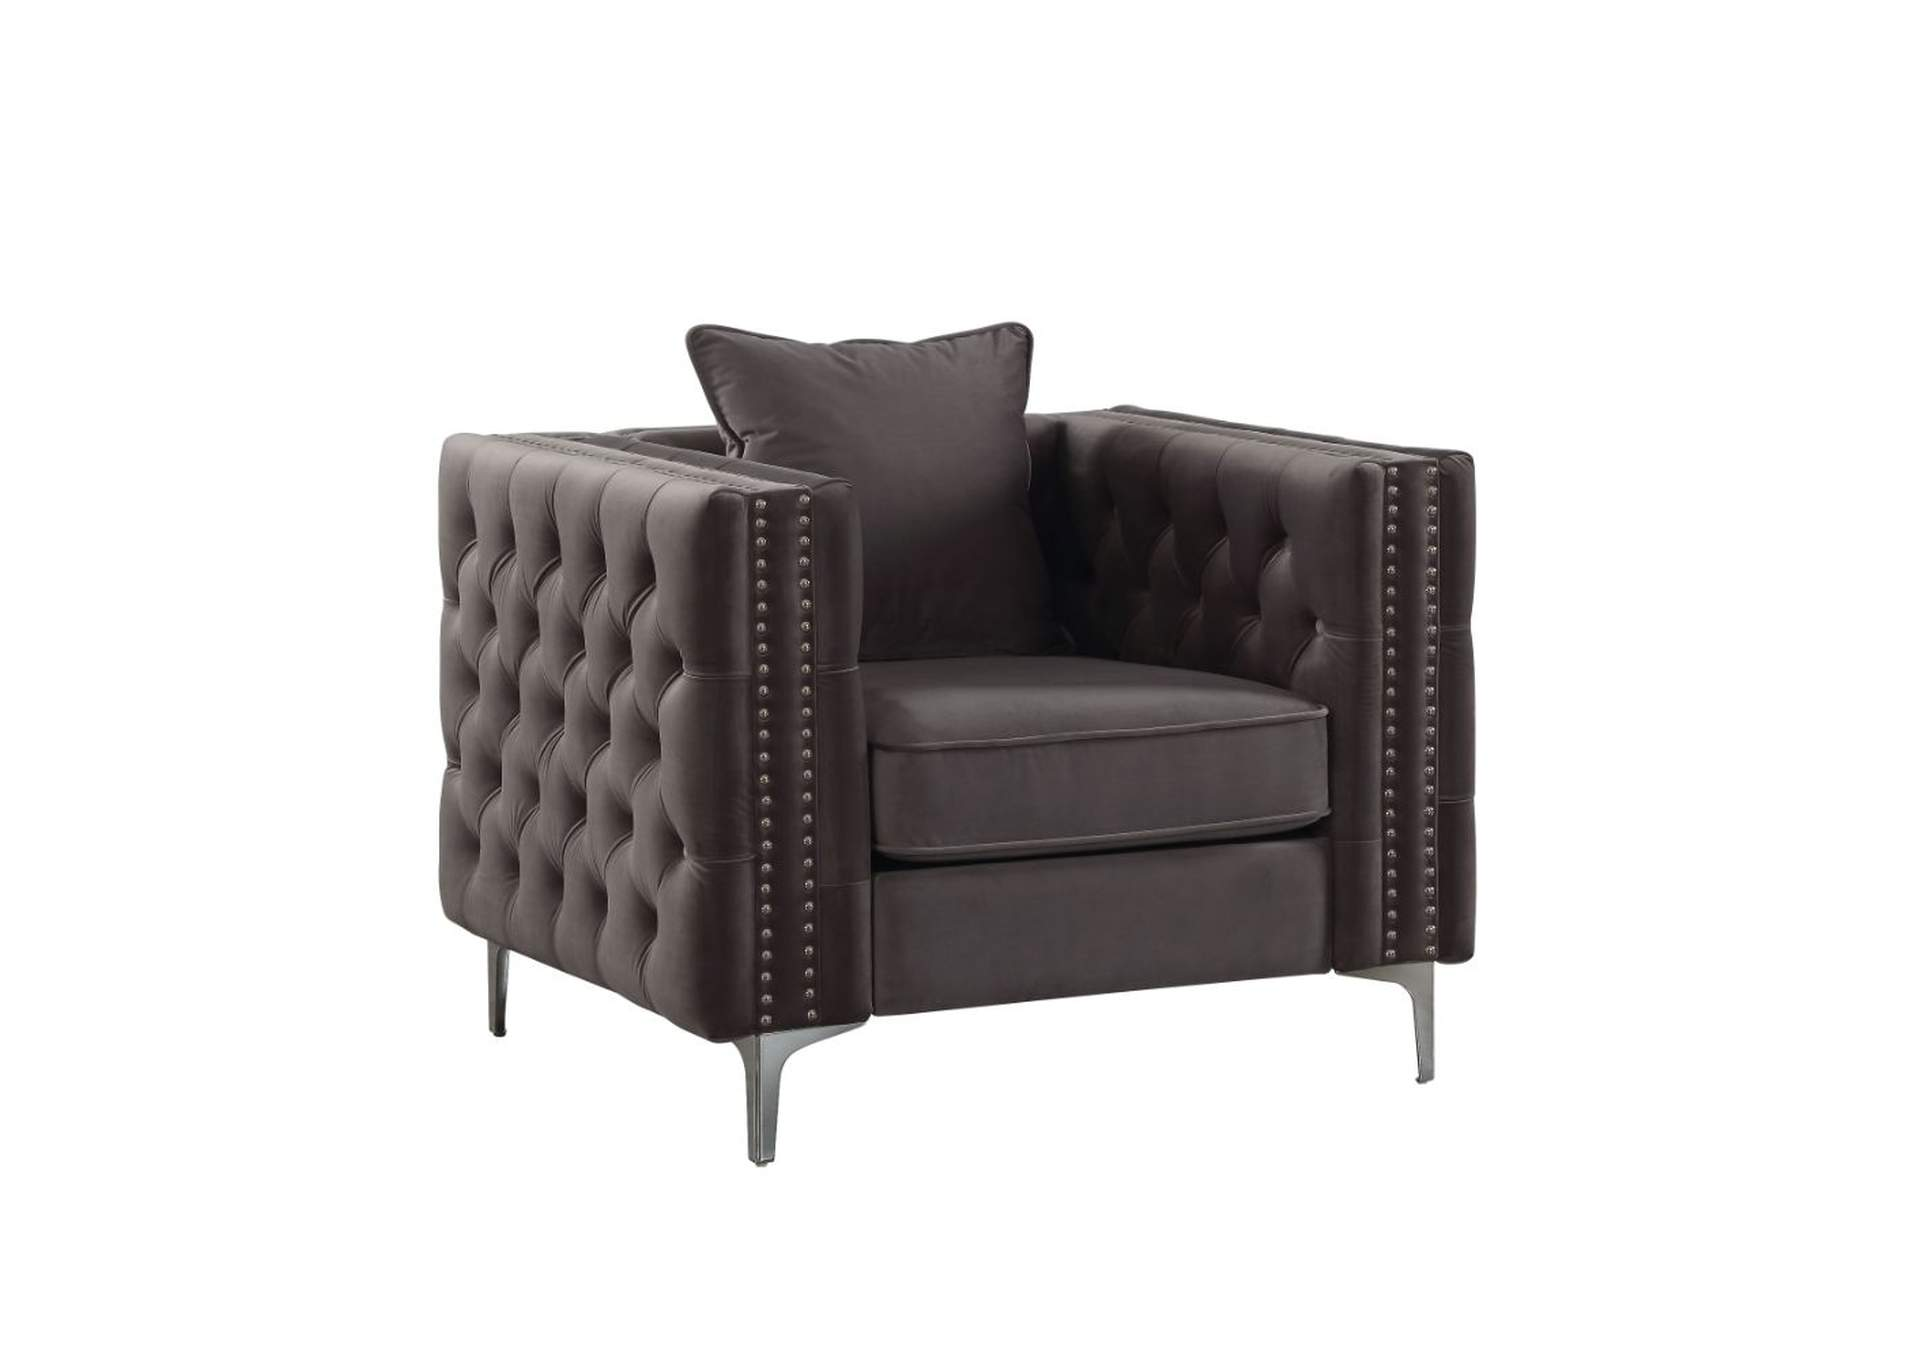 Gillian II Dark Gray Velvet Chair,Acme